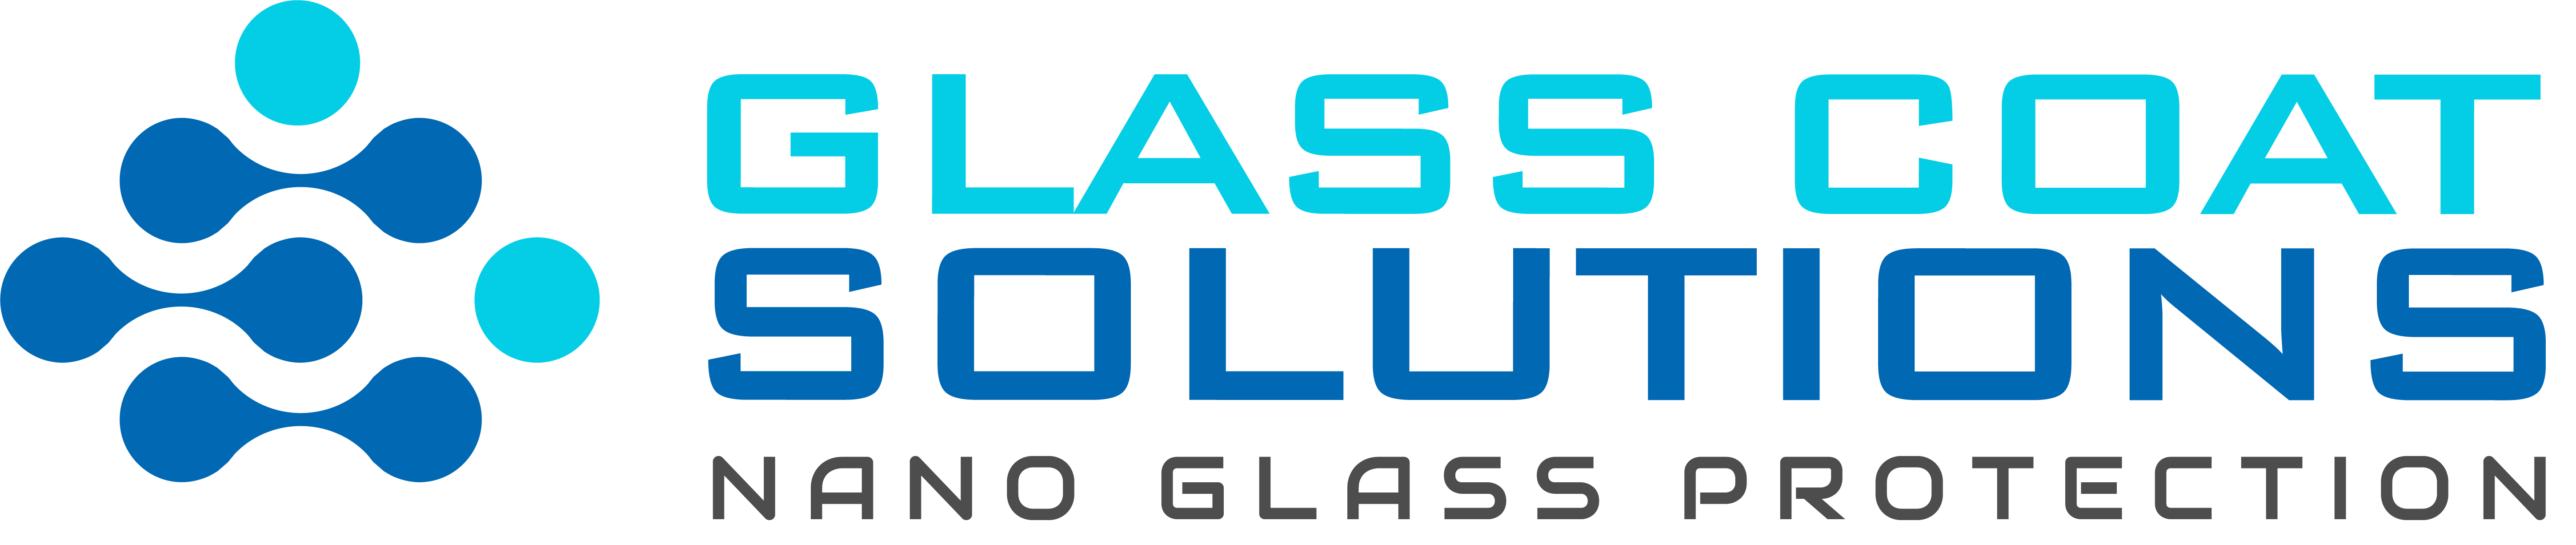 Nano Glass Protection, nano glass protector, glass protector, enduroshield, glass coat solutions, glass coating, glass screen protector